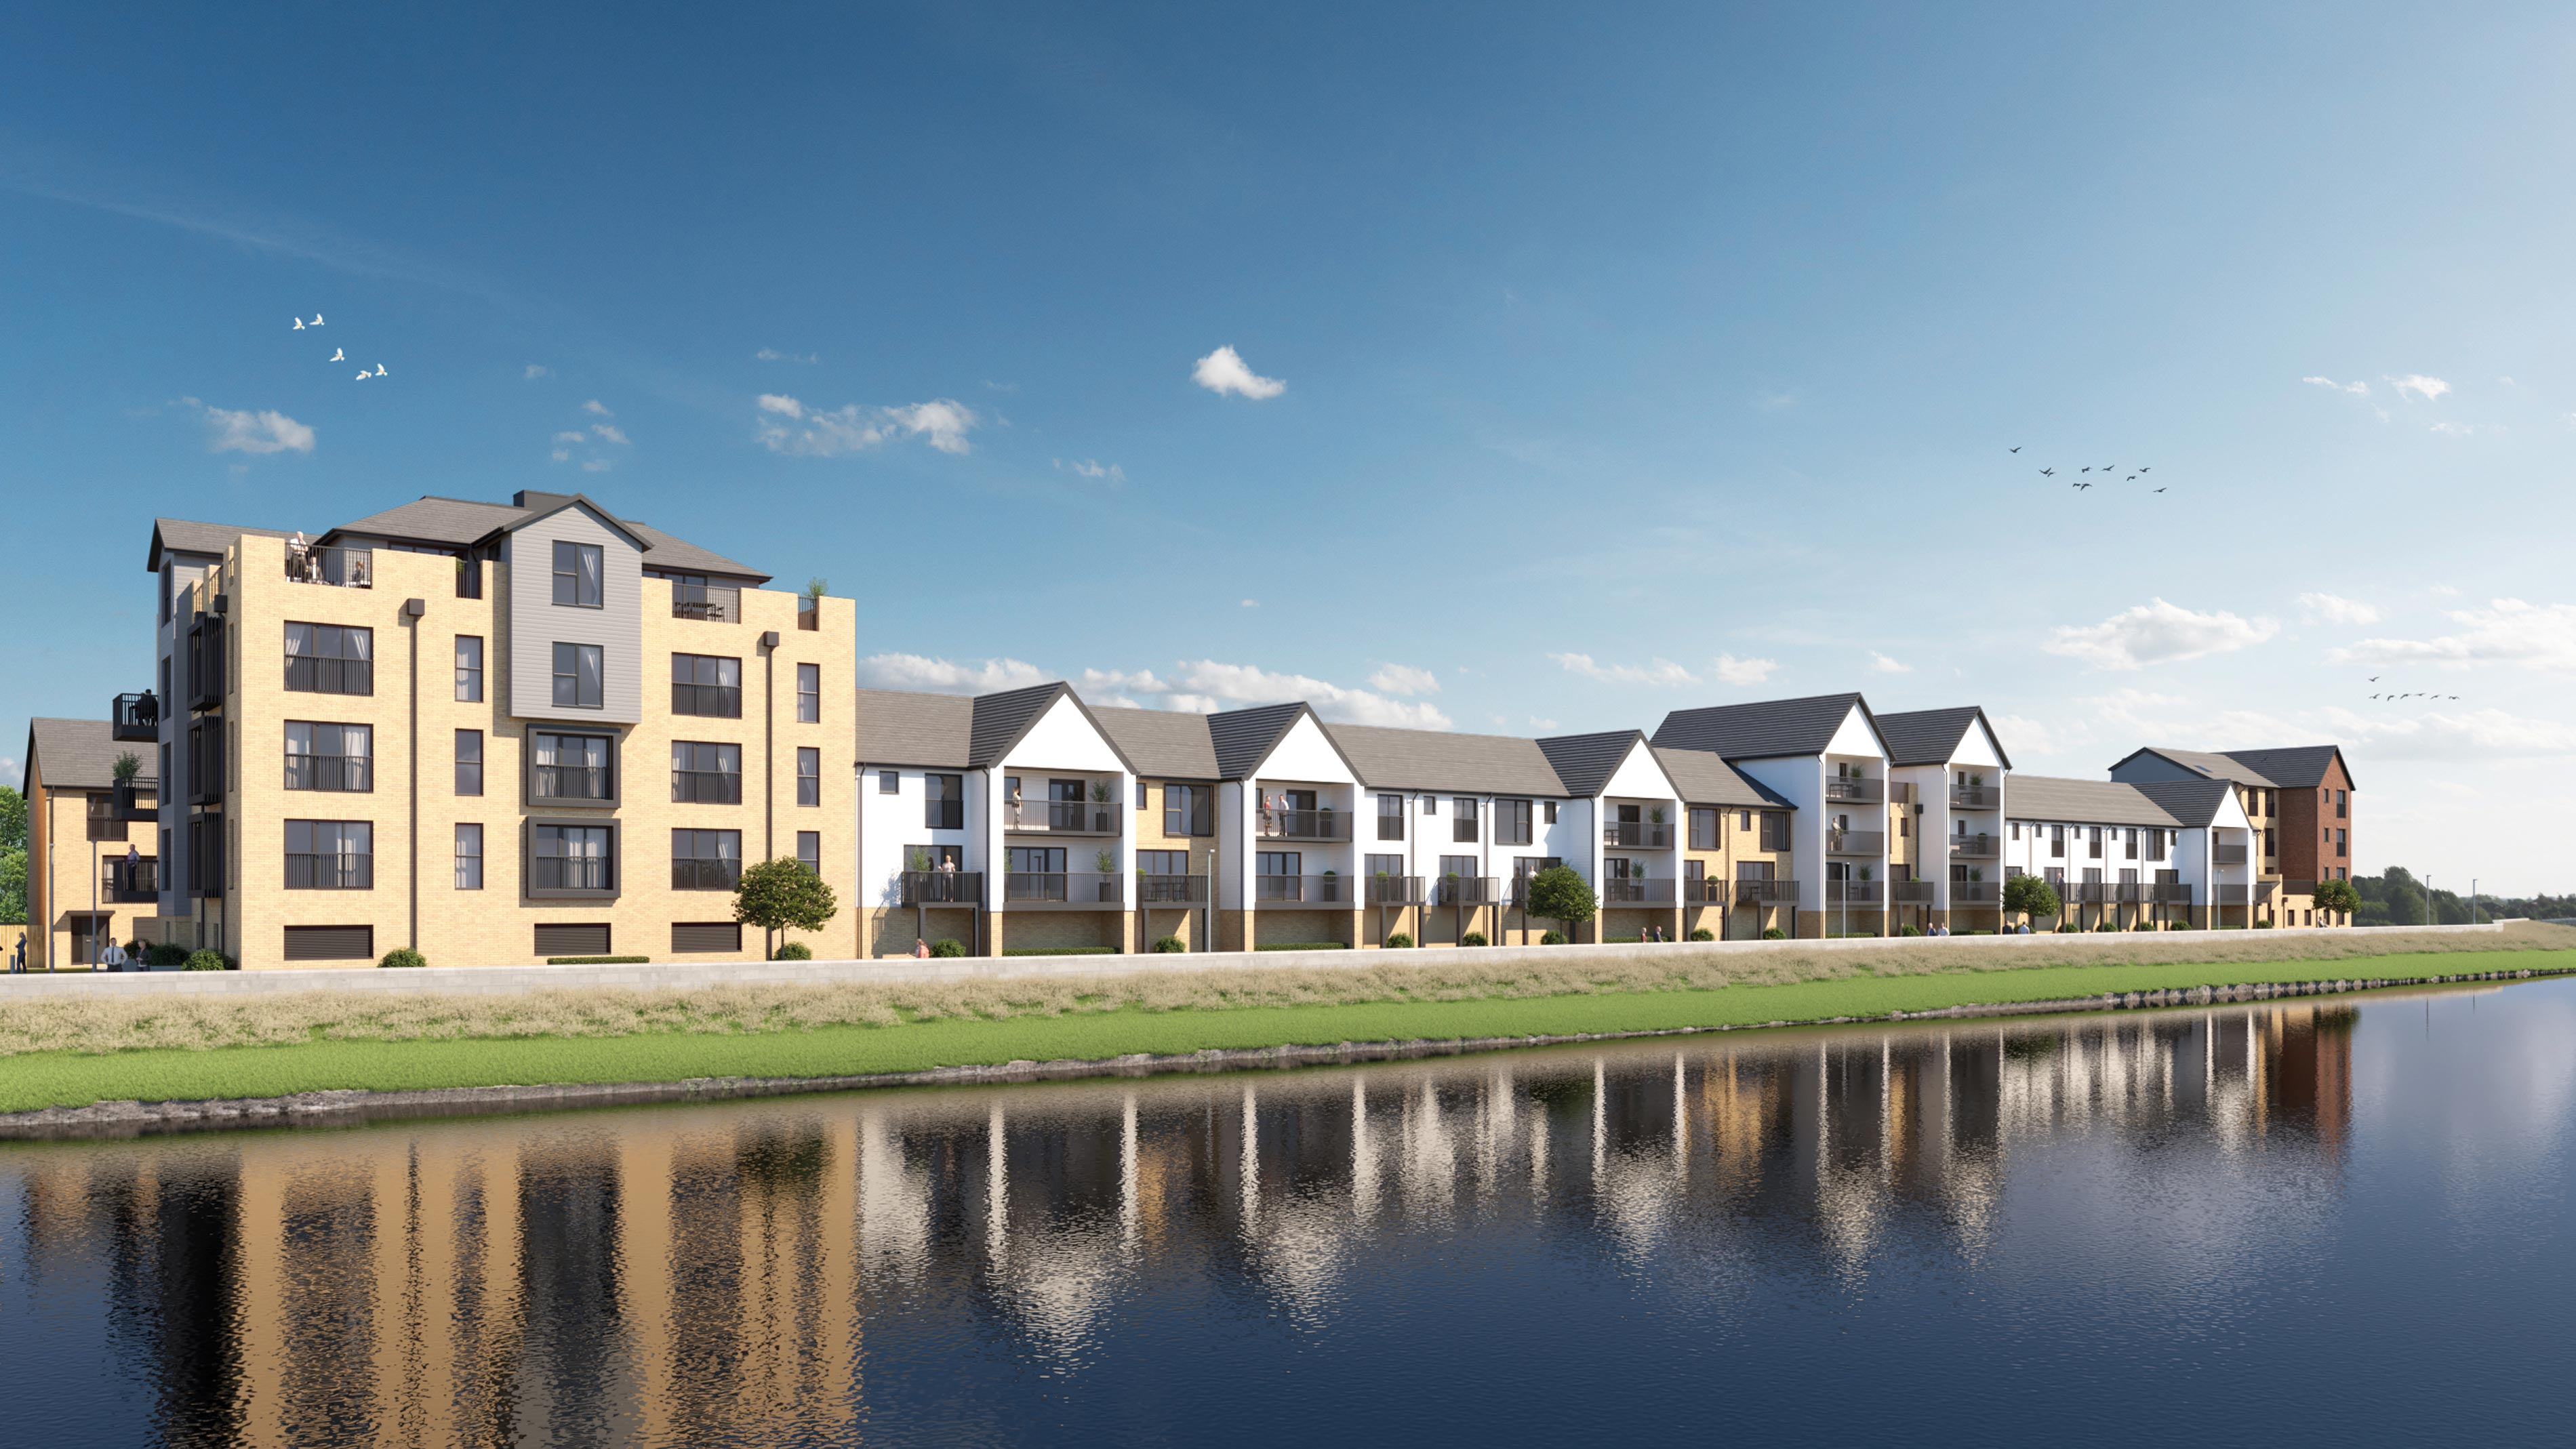 Taw Wharf Town houses for sale Barnstaple